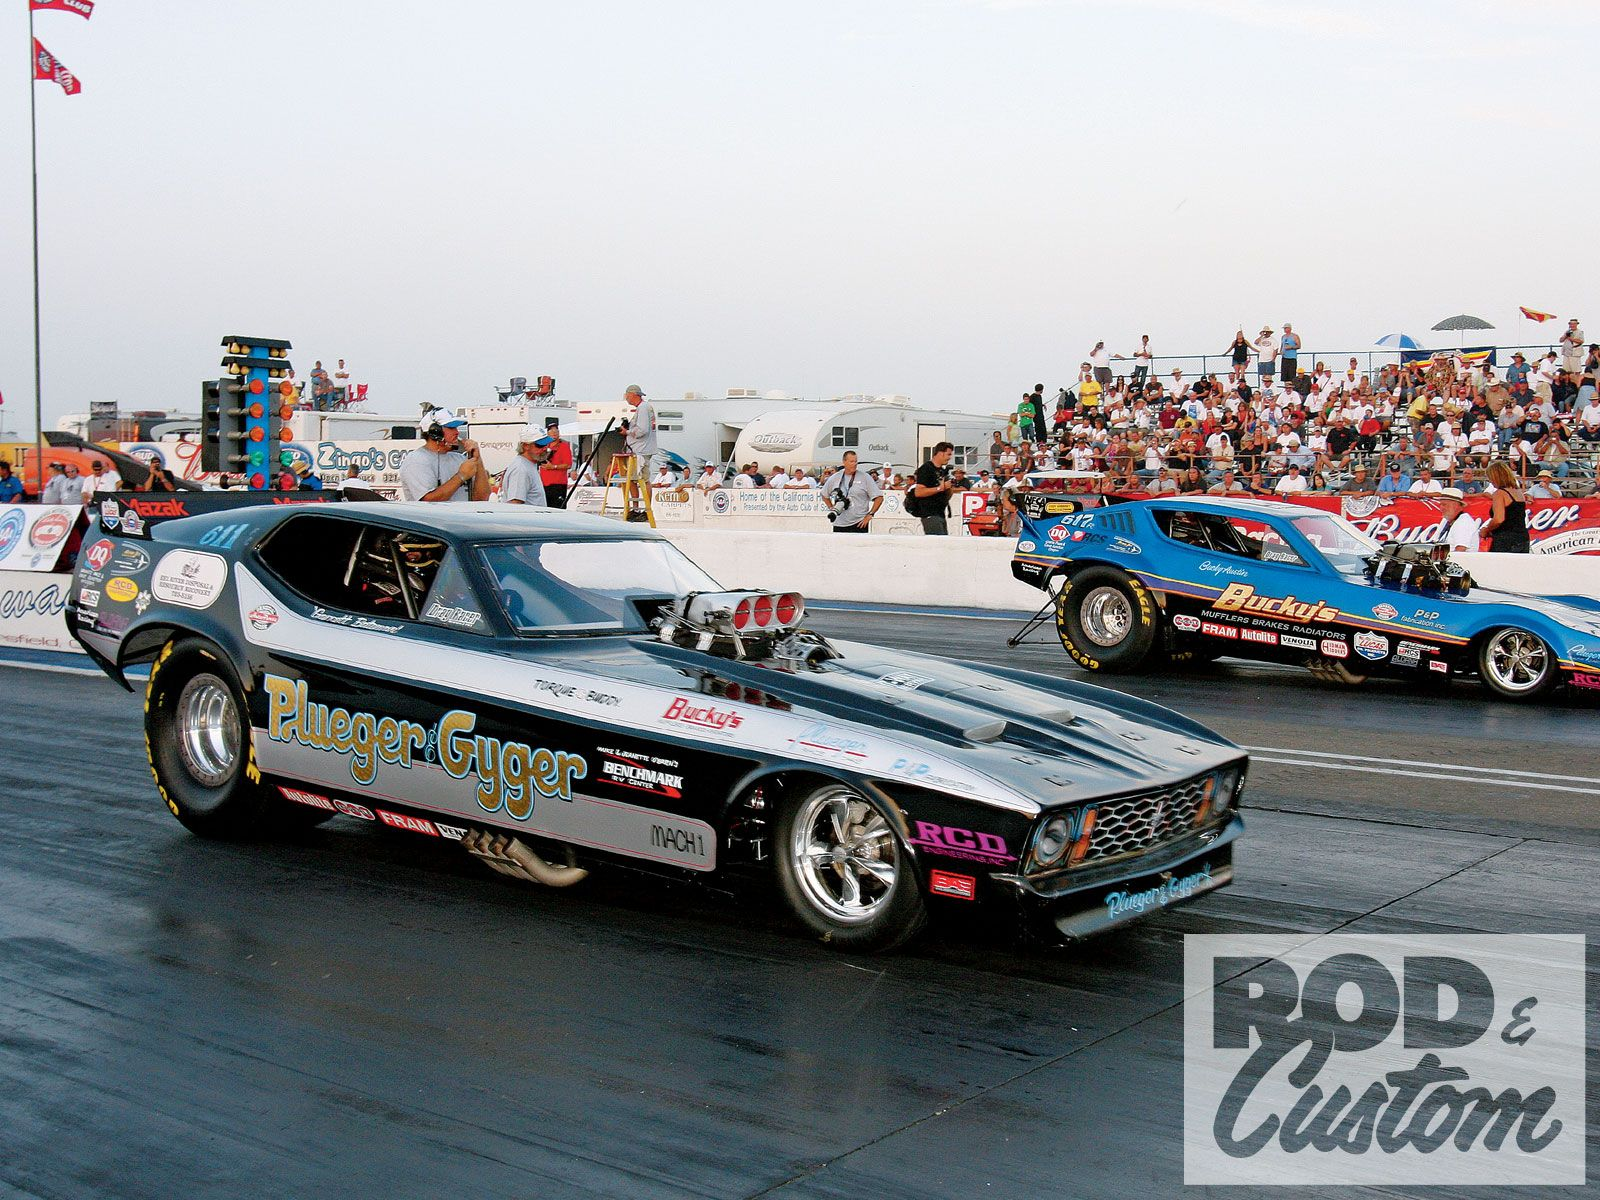 www.old classic hotrods.com | Hot Rod Reunion Vintage Race Cars ...